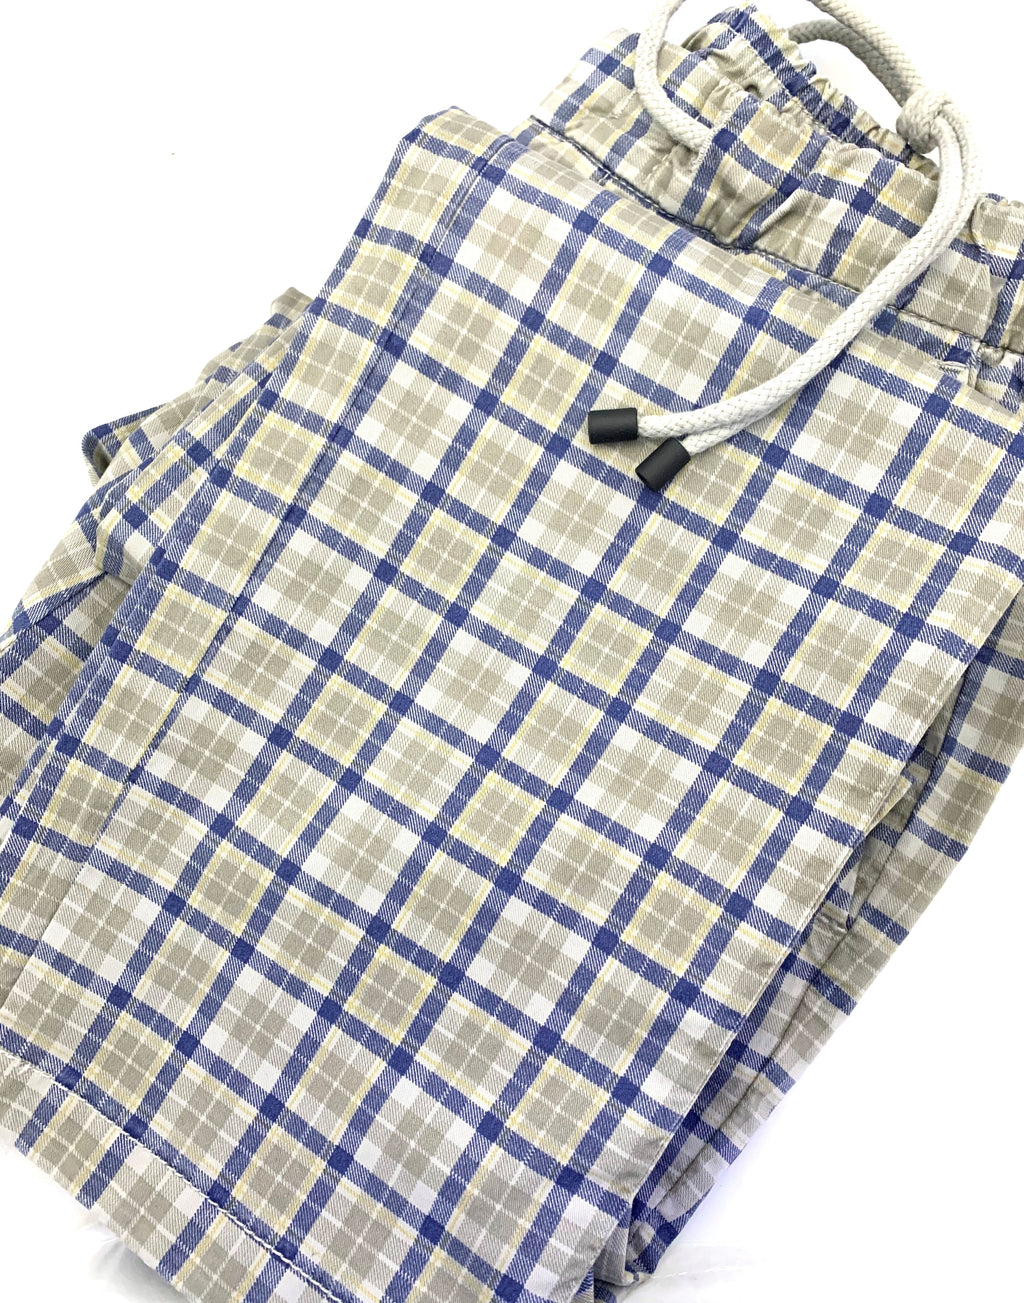 Teleria Zed Drawstring Cotton Tan & Blue Plaid Chino